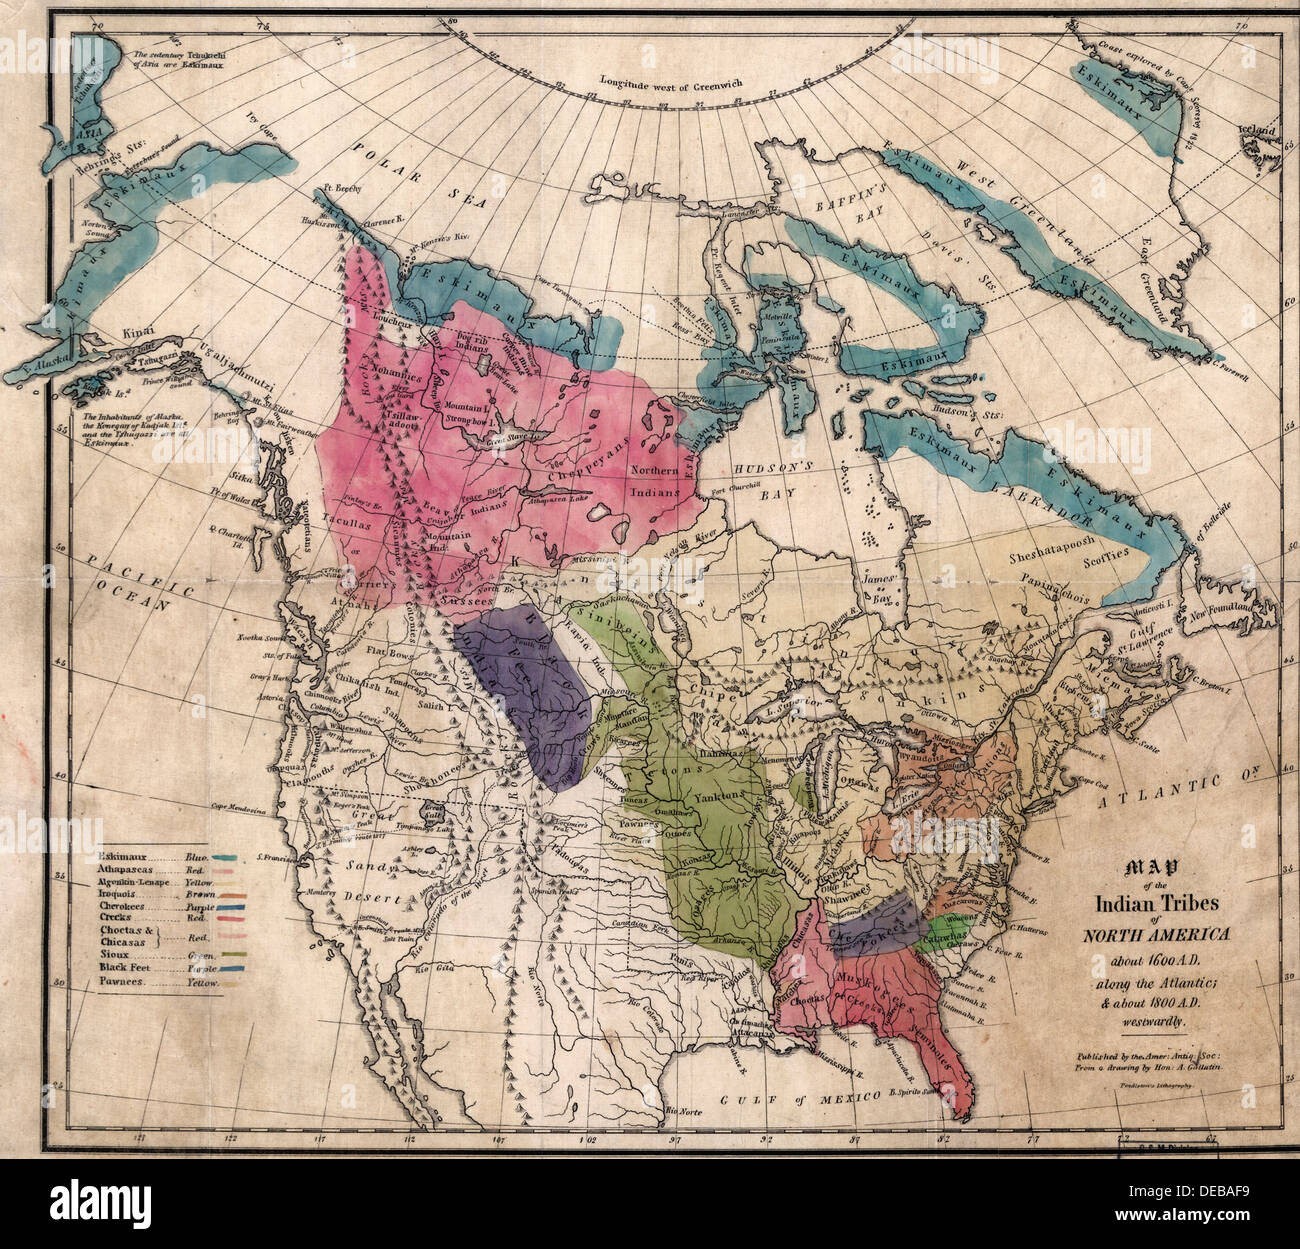 Map Of America In 1800.Map Of The Indian Tribes Of North America About 1600 A D Along The